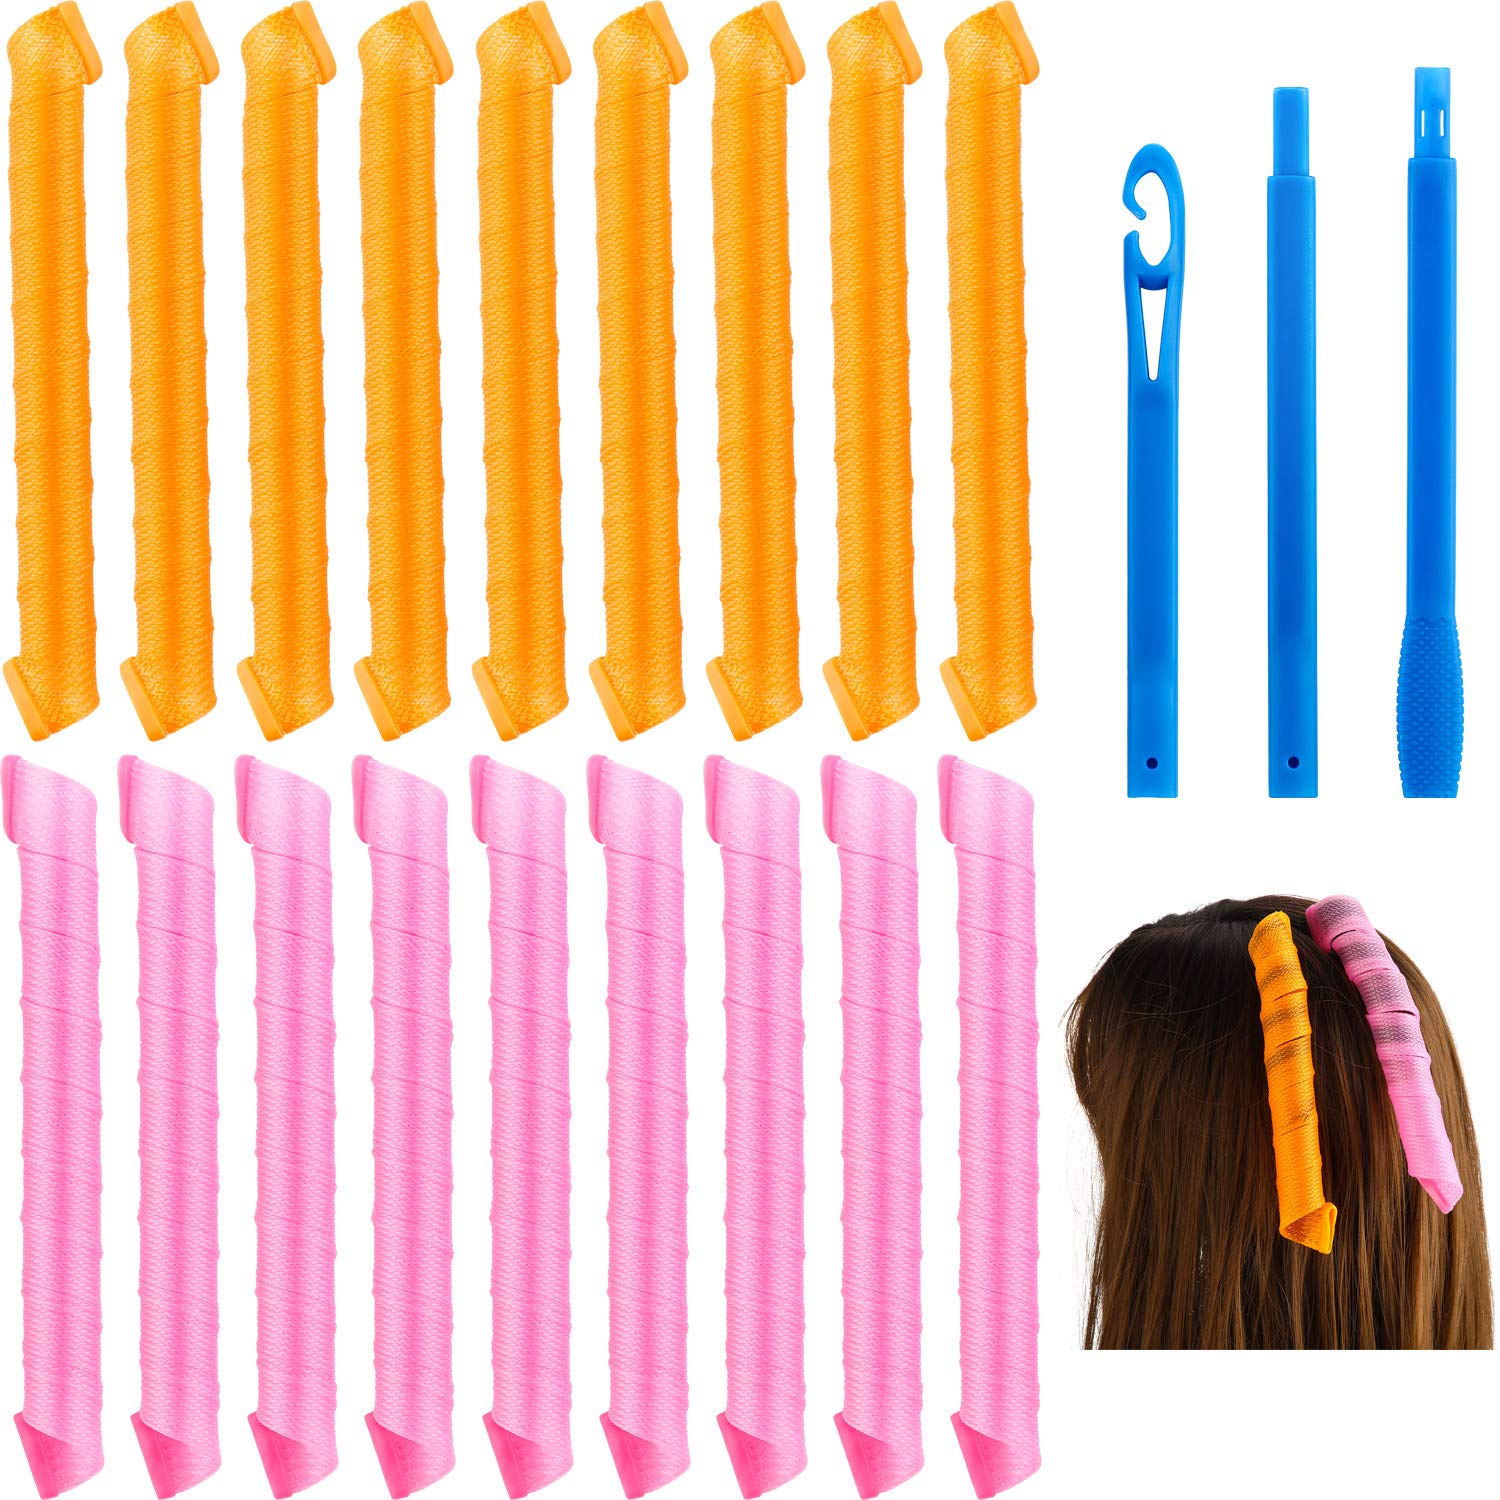 18 Pieces Hair Curlers Spiral Curls Magic Styling Kit No Heat Hair Curlers Colored Hair Rollers with Styling Hook Tools for Long Hair (65 cm)